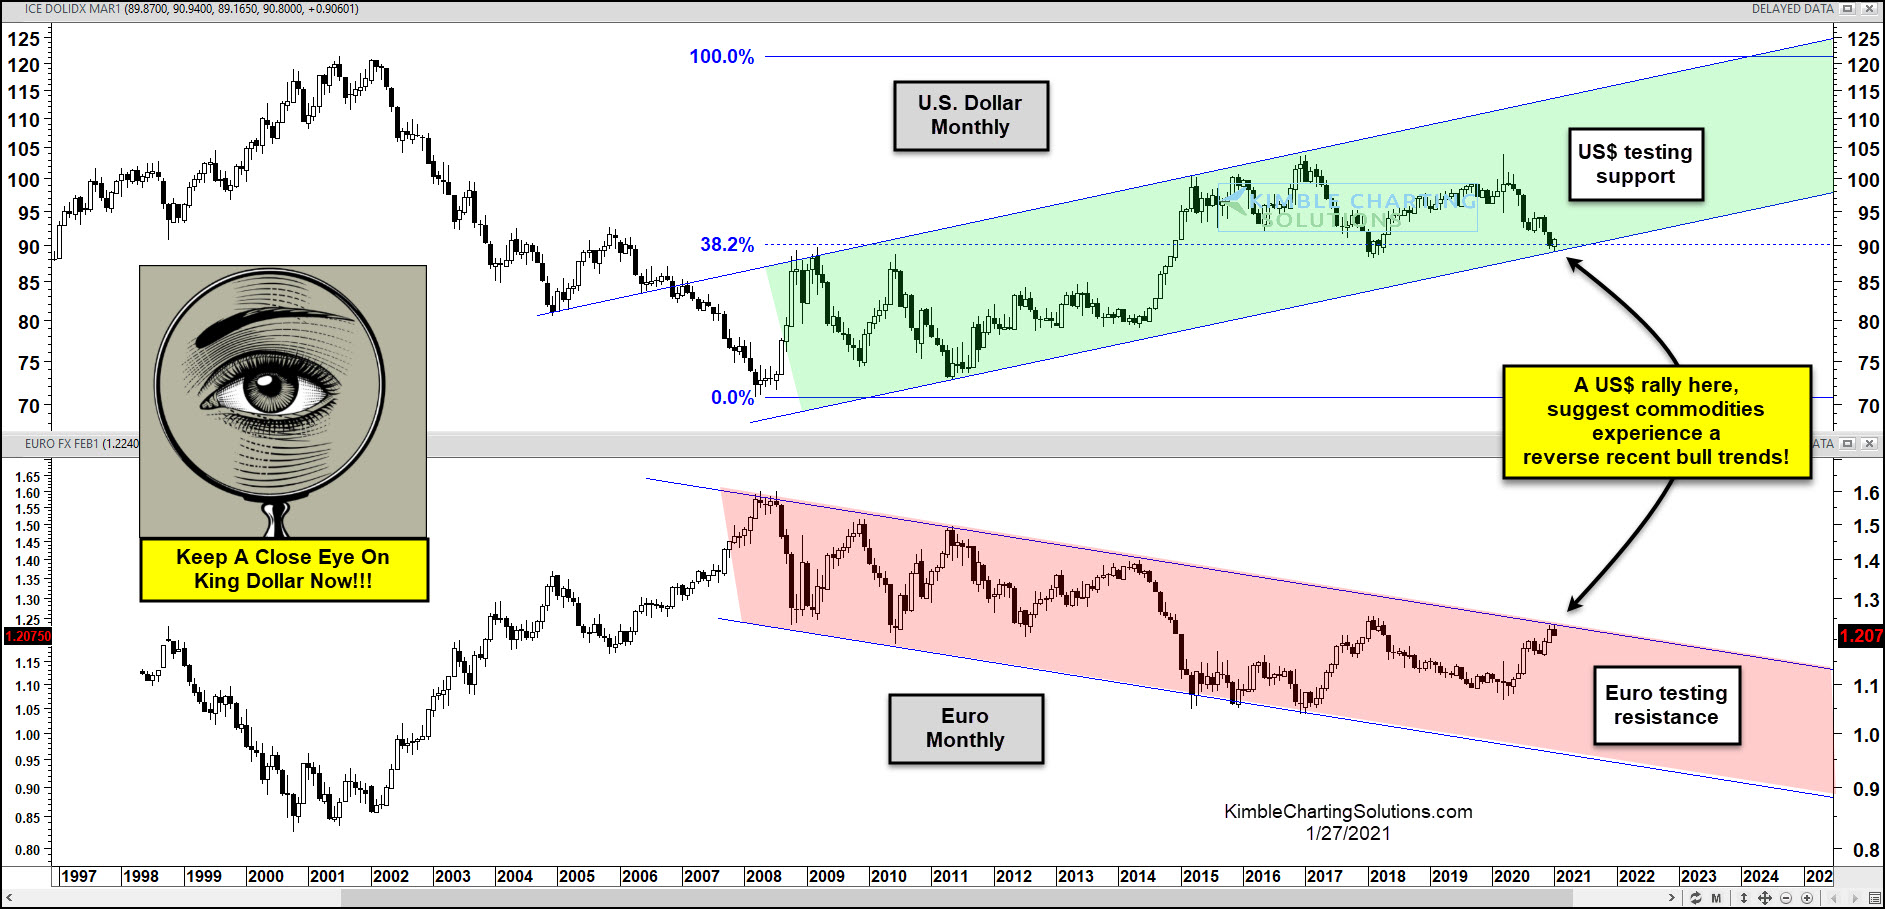 US Dollar Monthly Chart